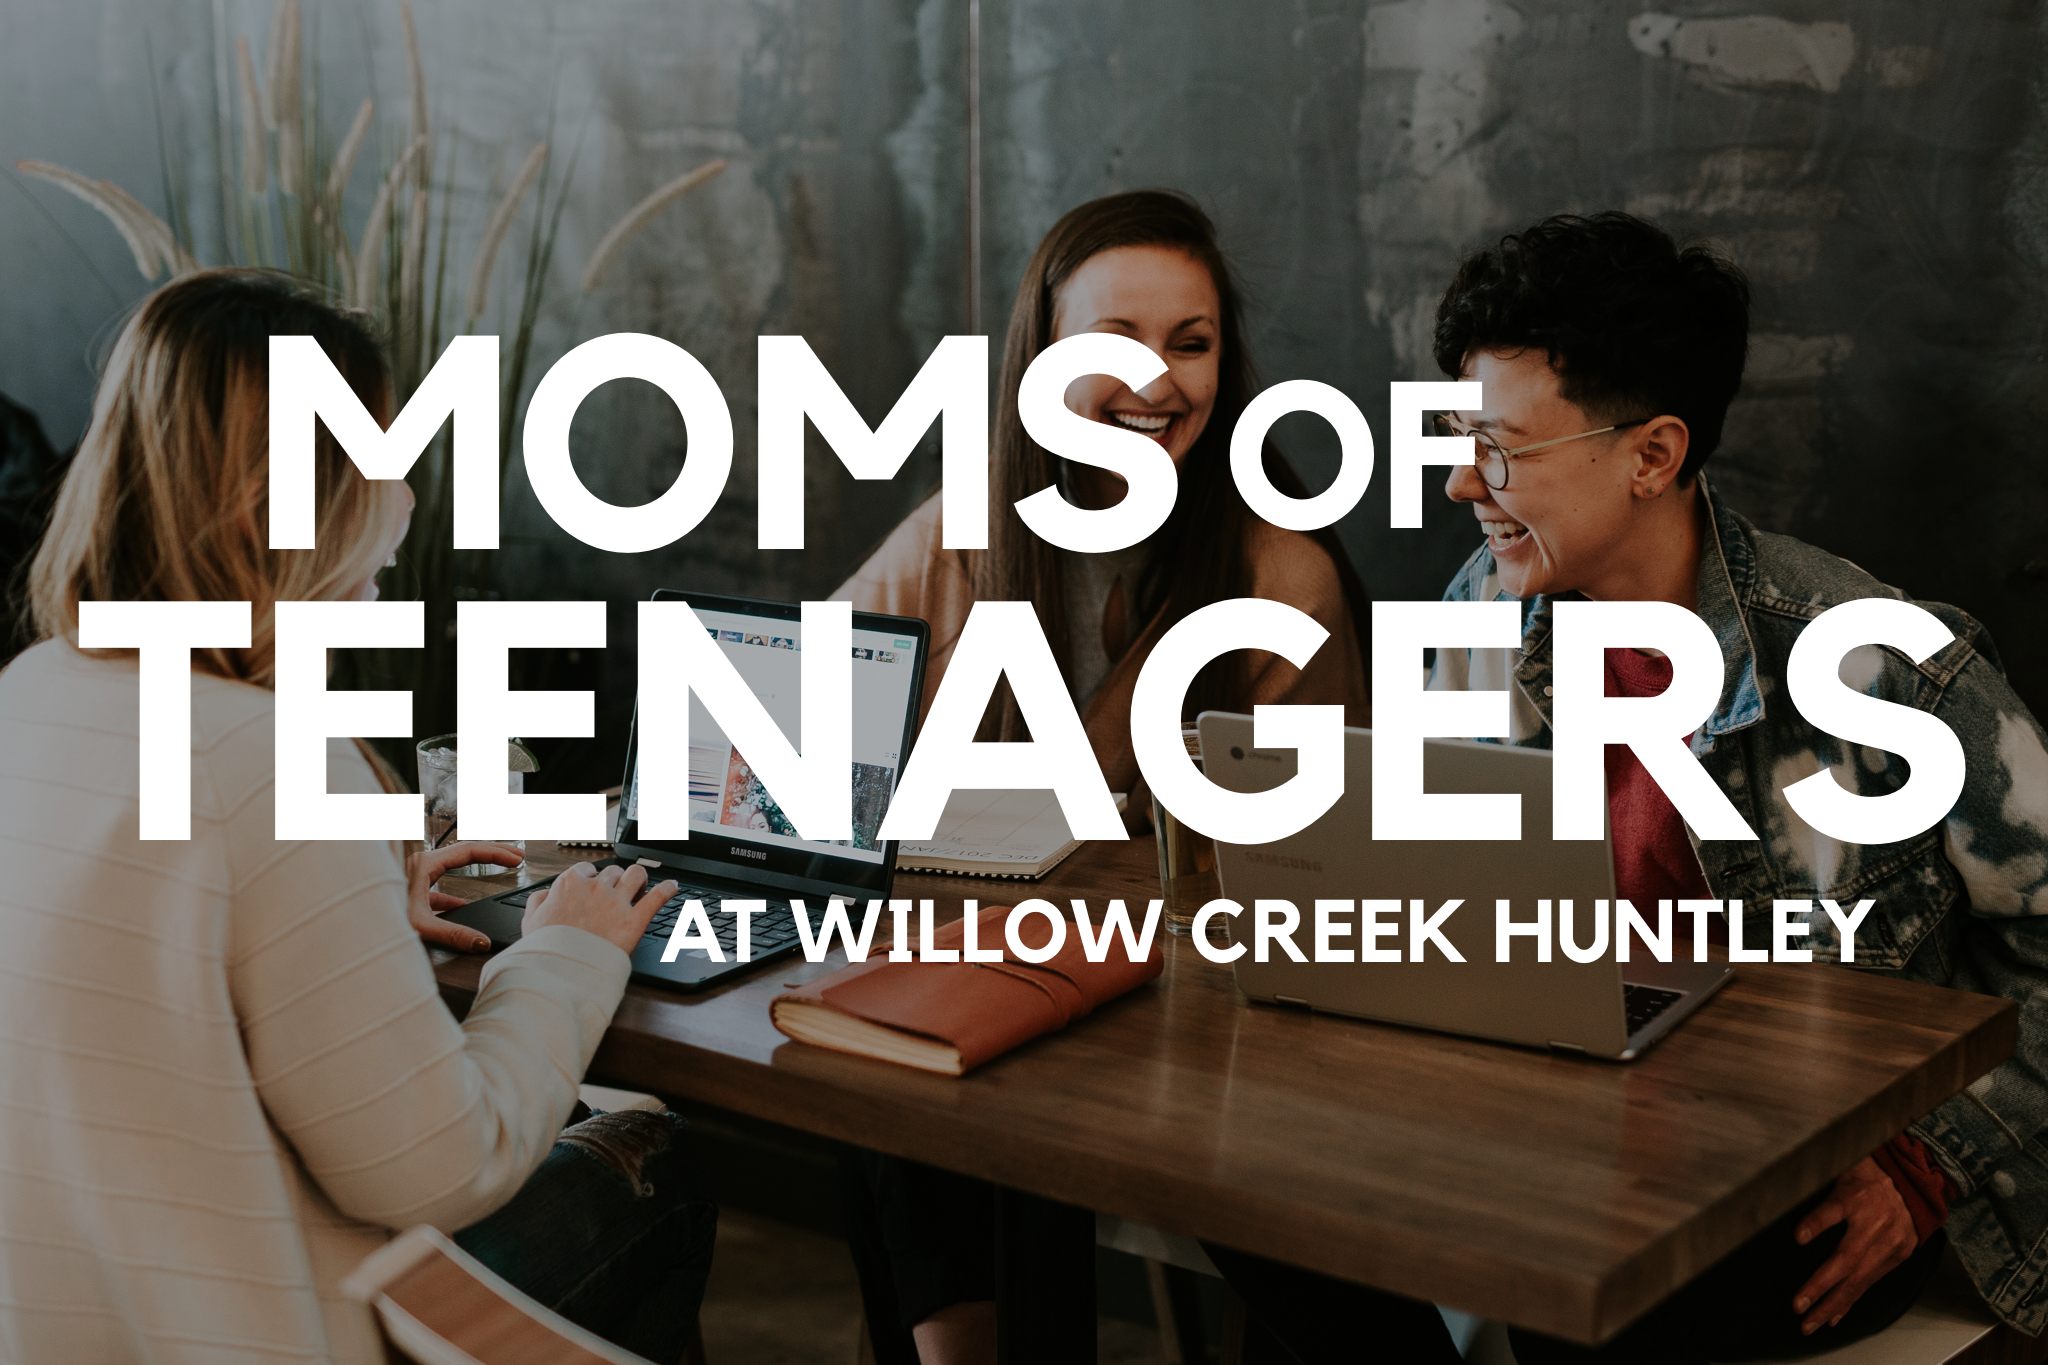 MOMS OF TEENAGERS - Have you ever felt like being the mom of a teenager is the hardest, most frustrating and emotionally trying time you have experienced as a mother?  Us too! Our Moms of Teenagers group will offer Biblical education, emotional support, guidance, and prayer for moms trying to navigate this season.Upcoming:Wednesday | Sept 25 | 7pm | Moms of Teens Social | Willow HuntleyCome join us and get connected with other Moms of Teens prior to our fall launch. This group offers Biblical education, emotional support, guidance, and prayer for moms trying to navigate this season.Contact Jamie at JWombacher@lawgr.com OR Marcie at unfrgtbl@juno.com for more details